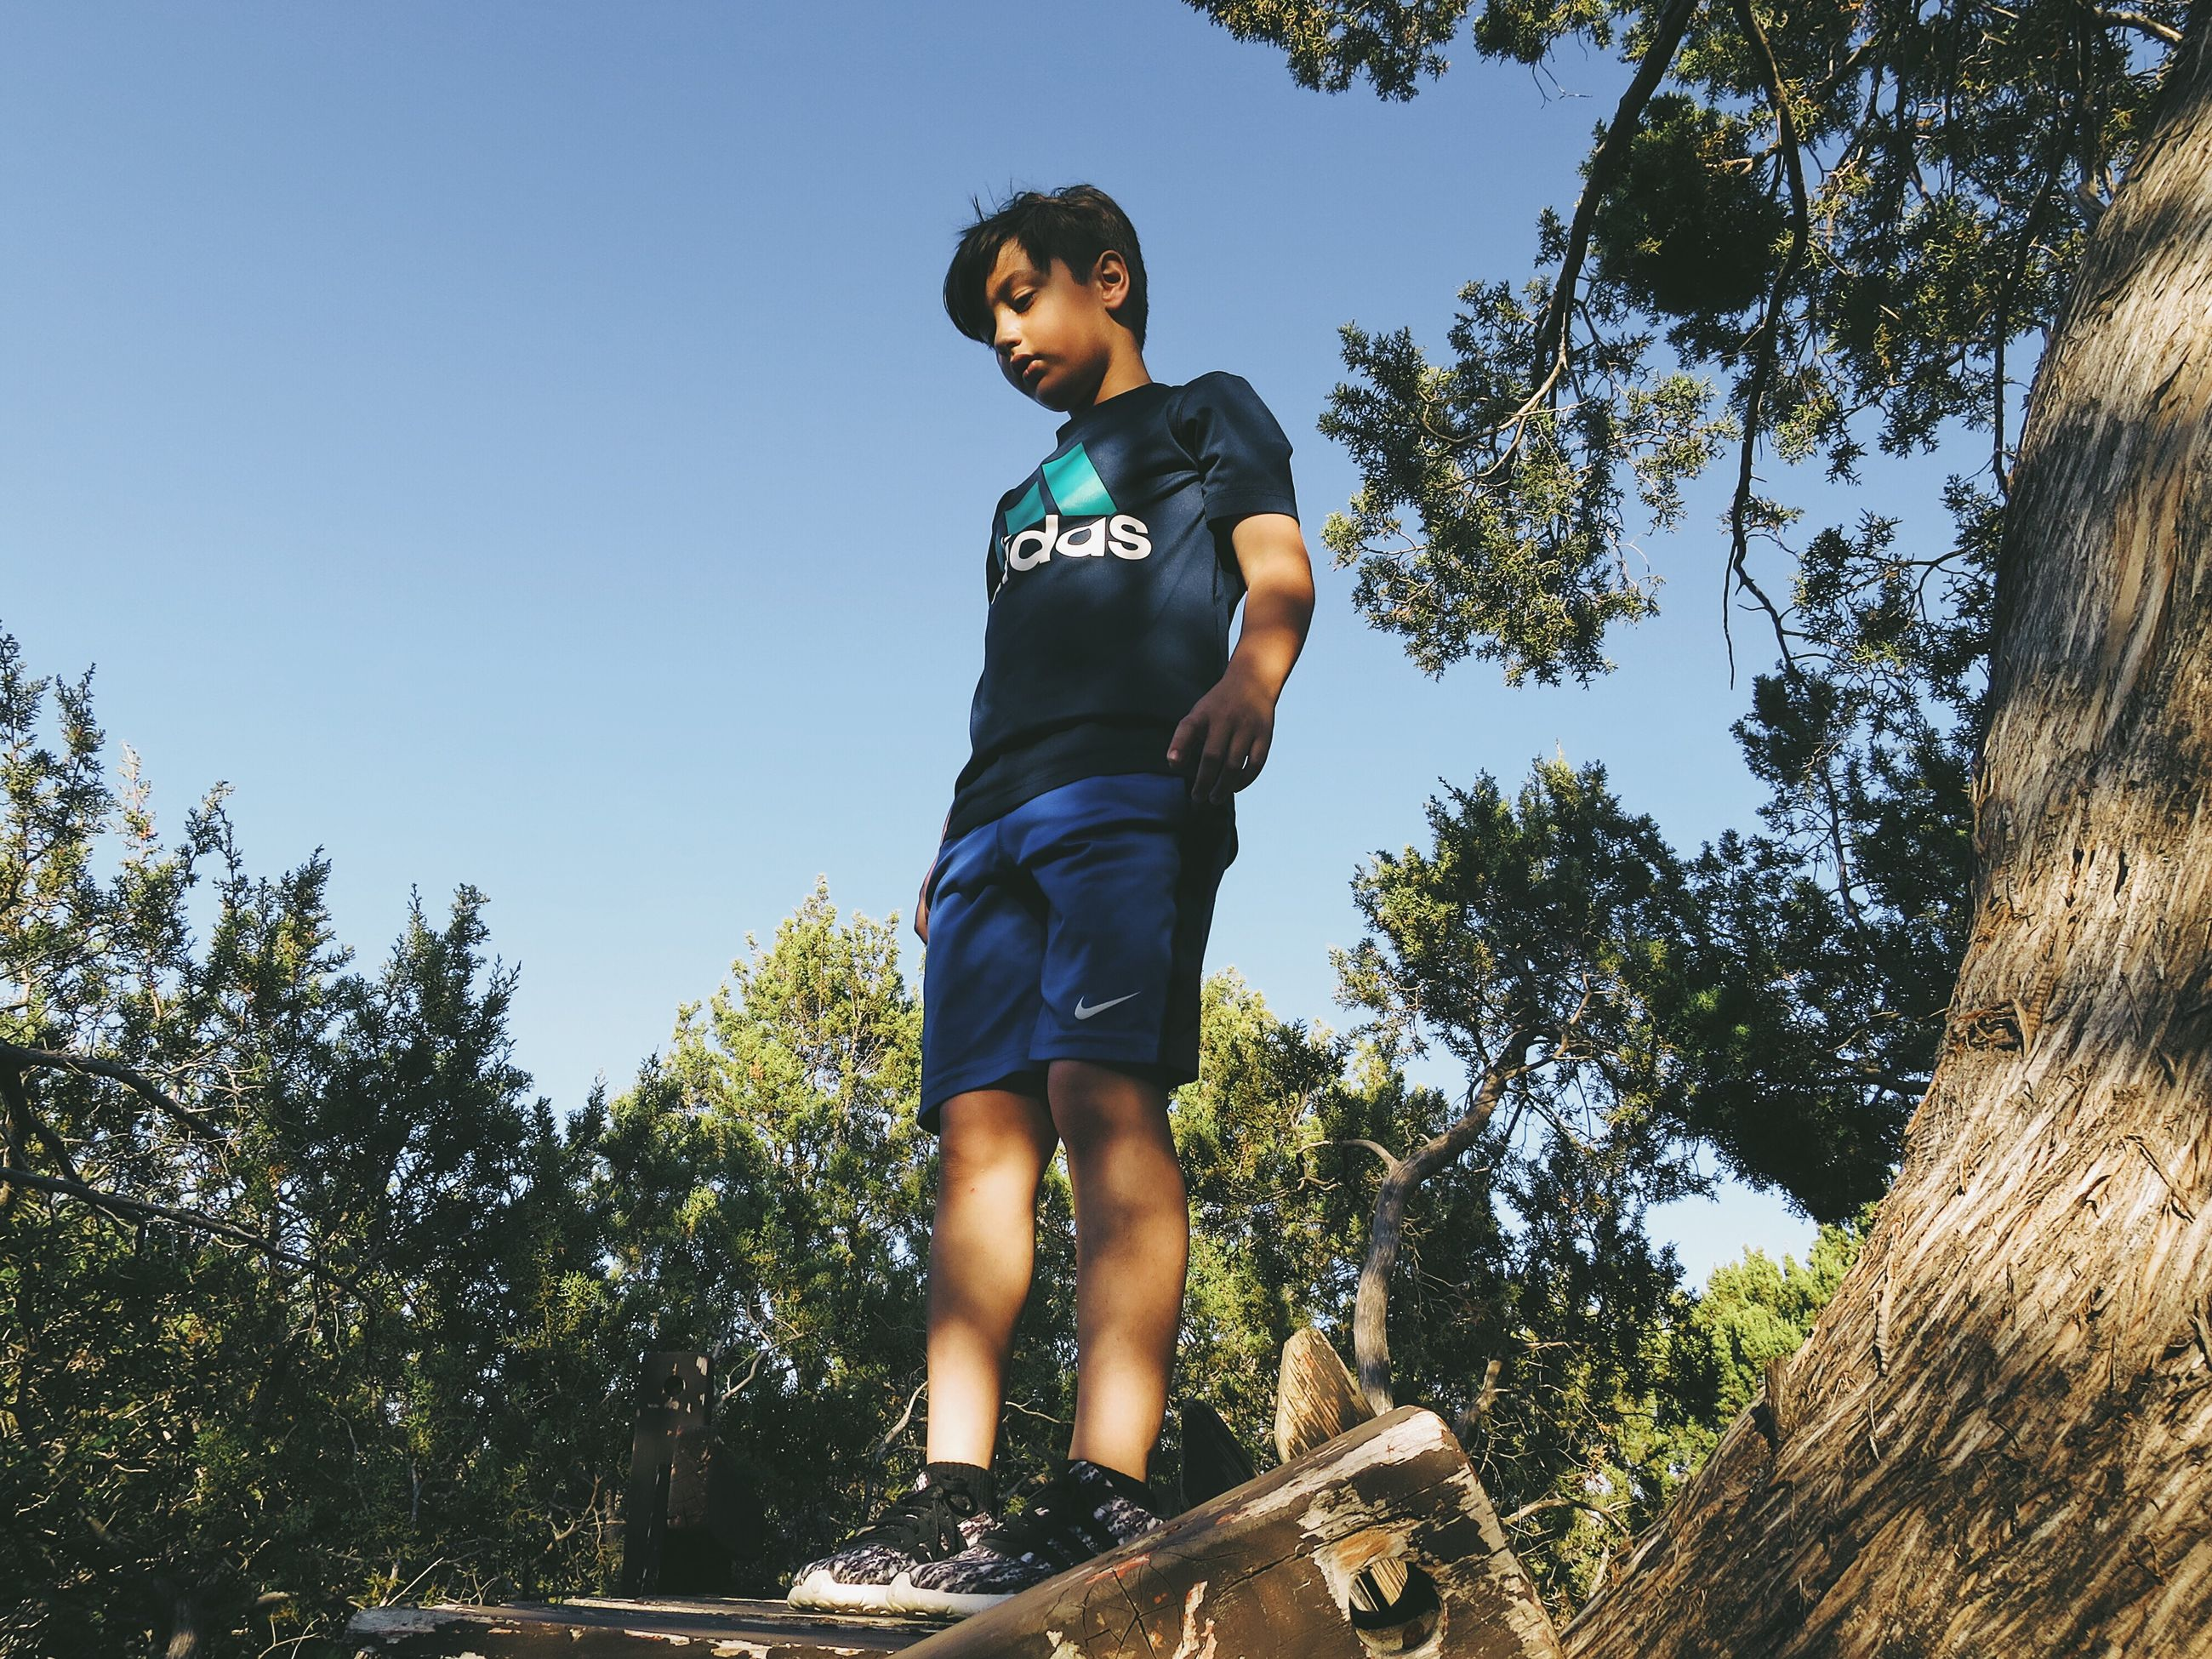 one person, tree, vitality, child, low angle view, day, outdoors, adventure, sky, full length, lifestyles, childhood, real people, sport, summer, jumping, people, nature, young adult, adult, athlete